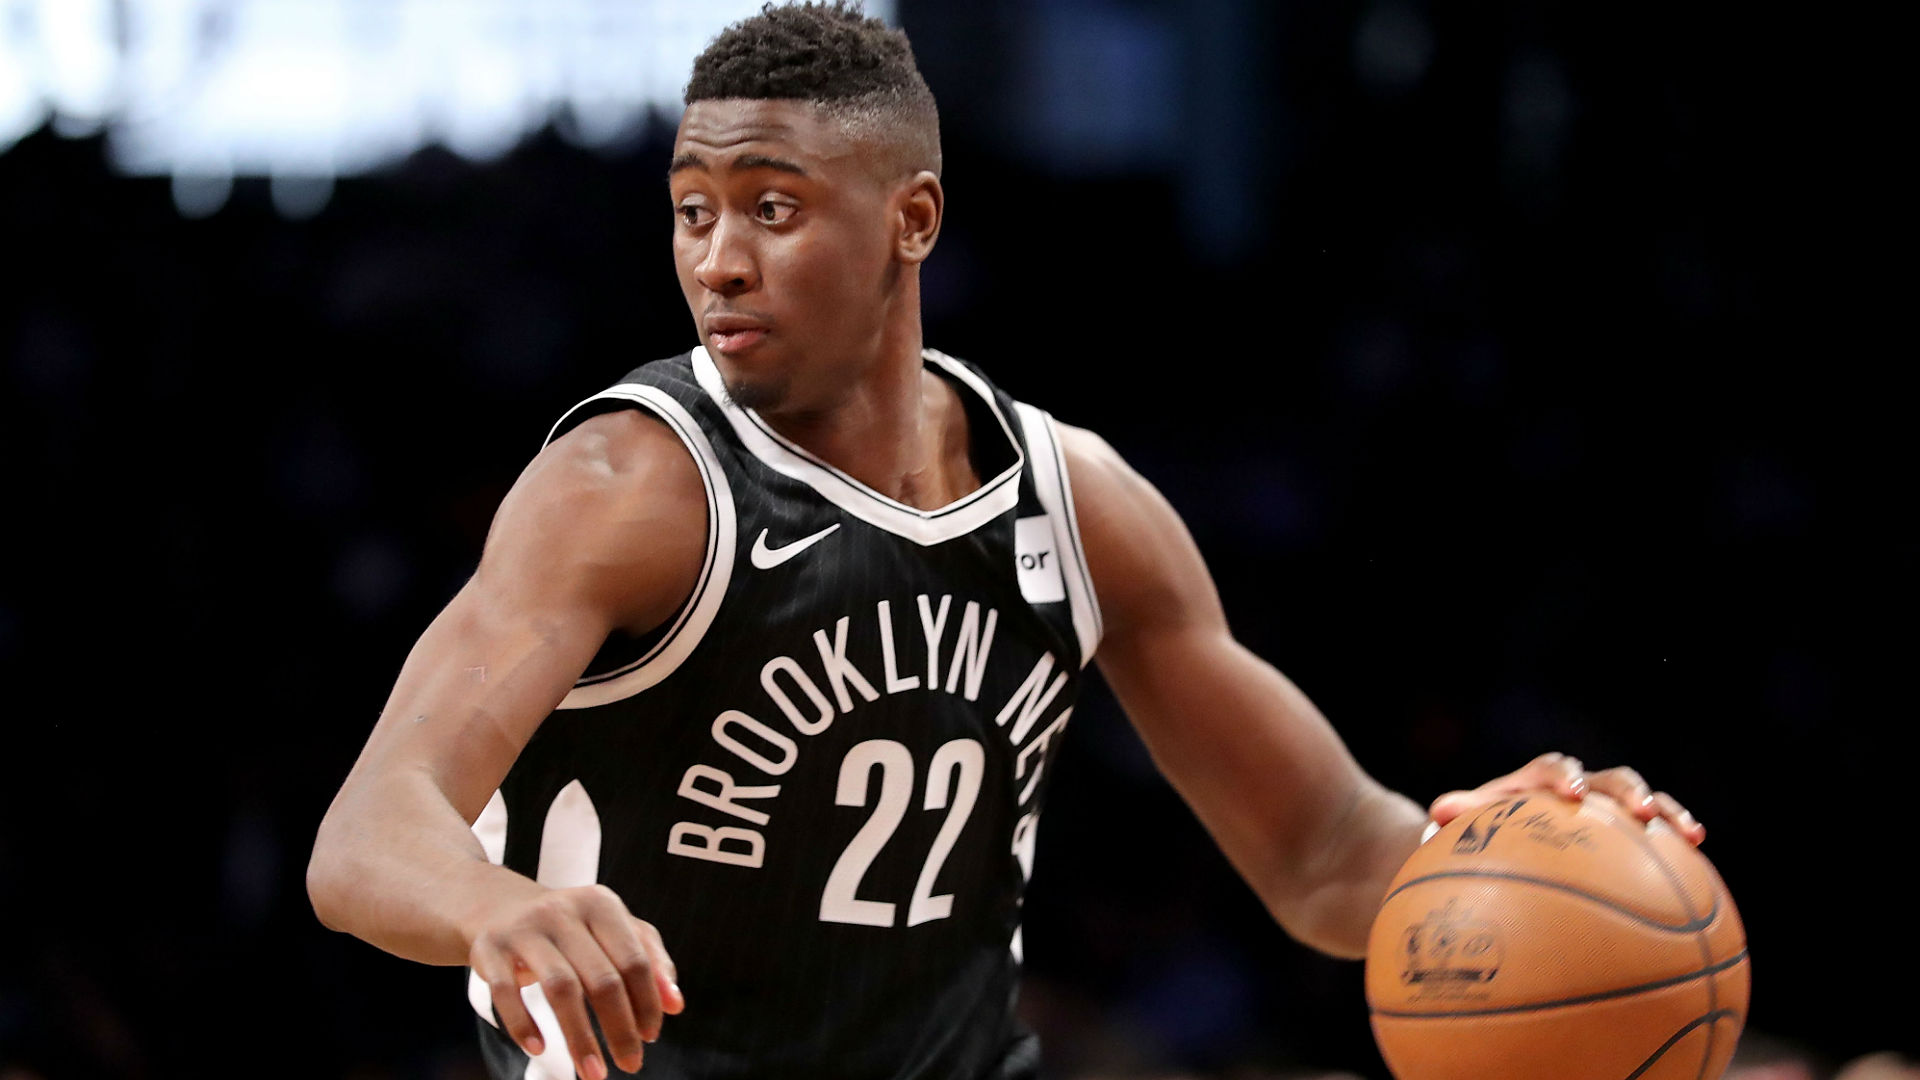 National Basketball Association rising star Caris LeVert suffers gruesome injury